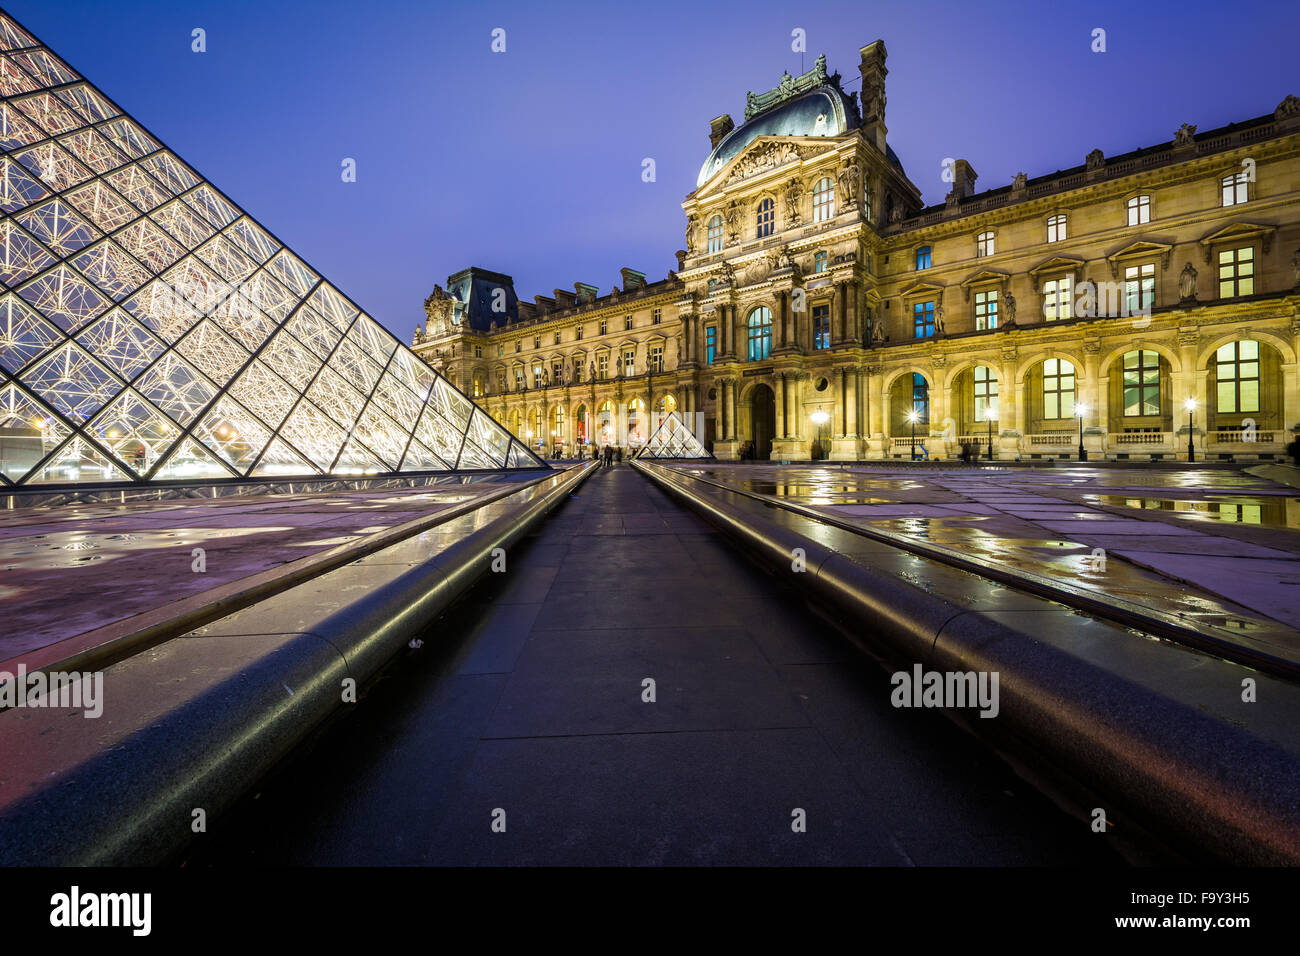 The Lourve at night, in Paris, France. - Stock Image